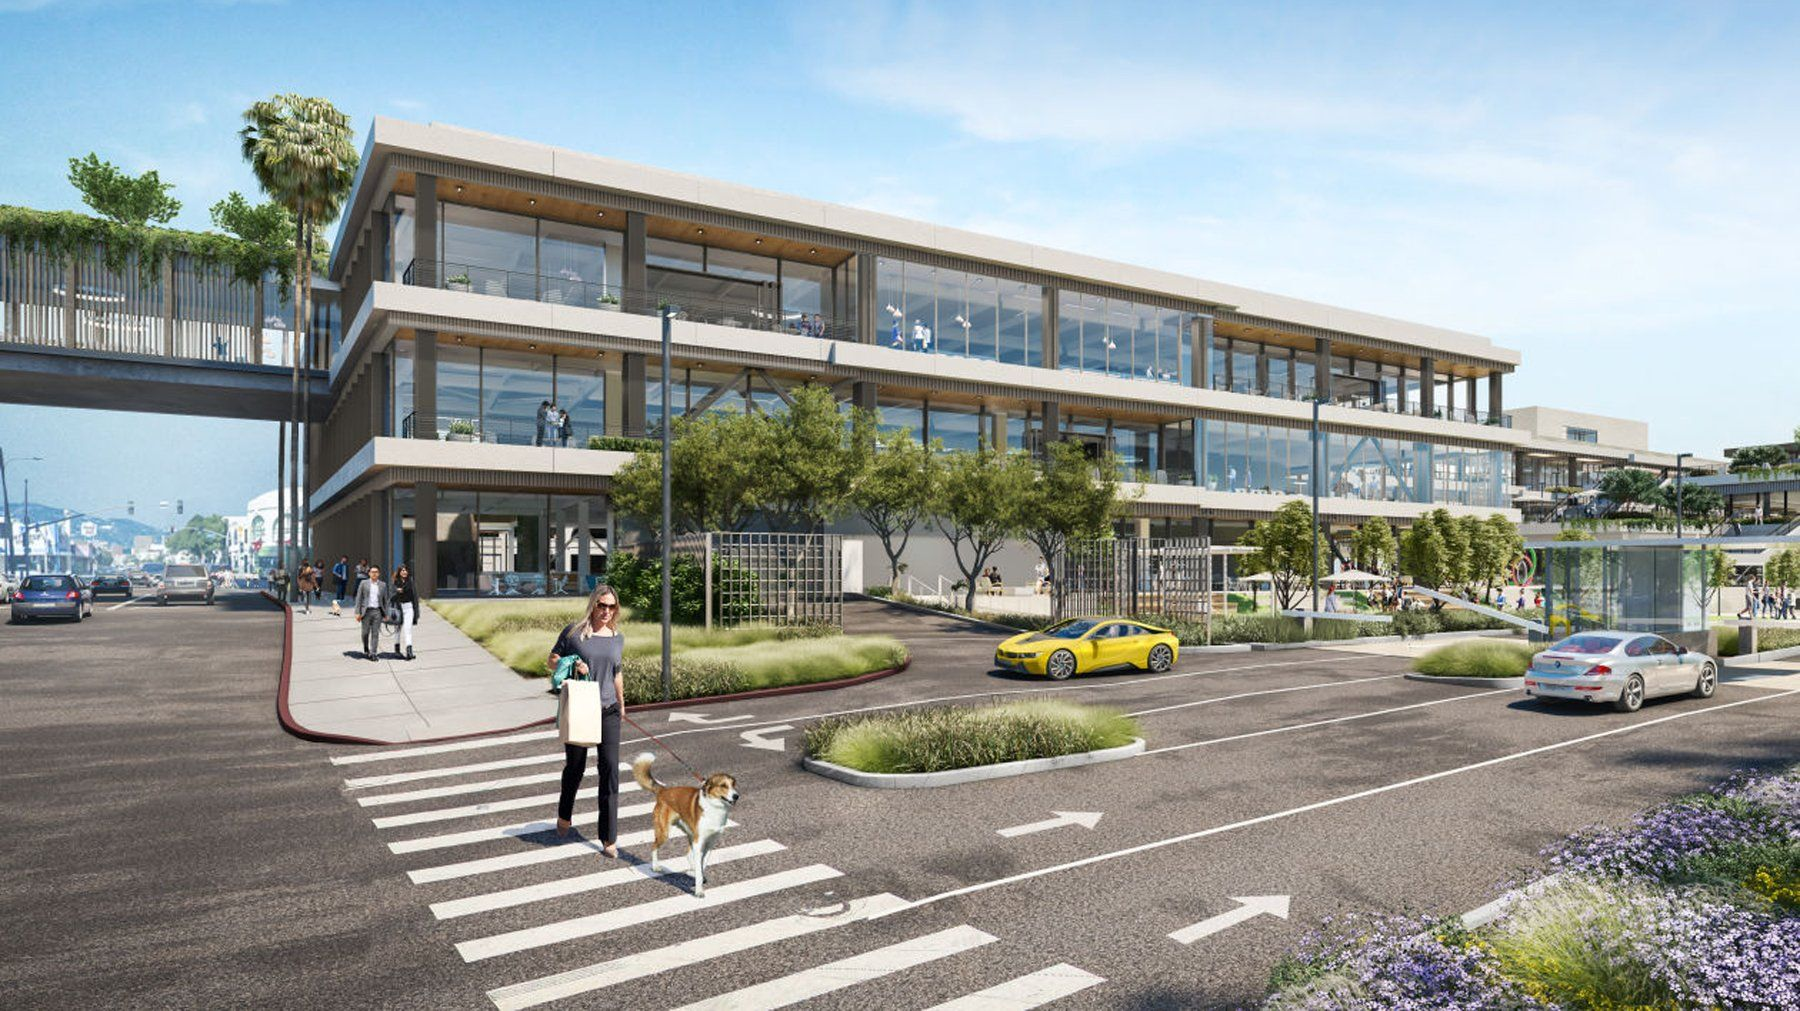 Google Signs 14 Year Lease For A Gigantic New Campus In West La Los Angeles Real Estate Office Space Pavilion